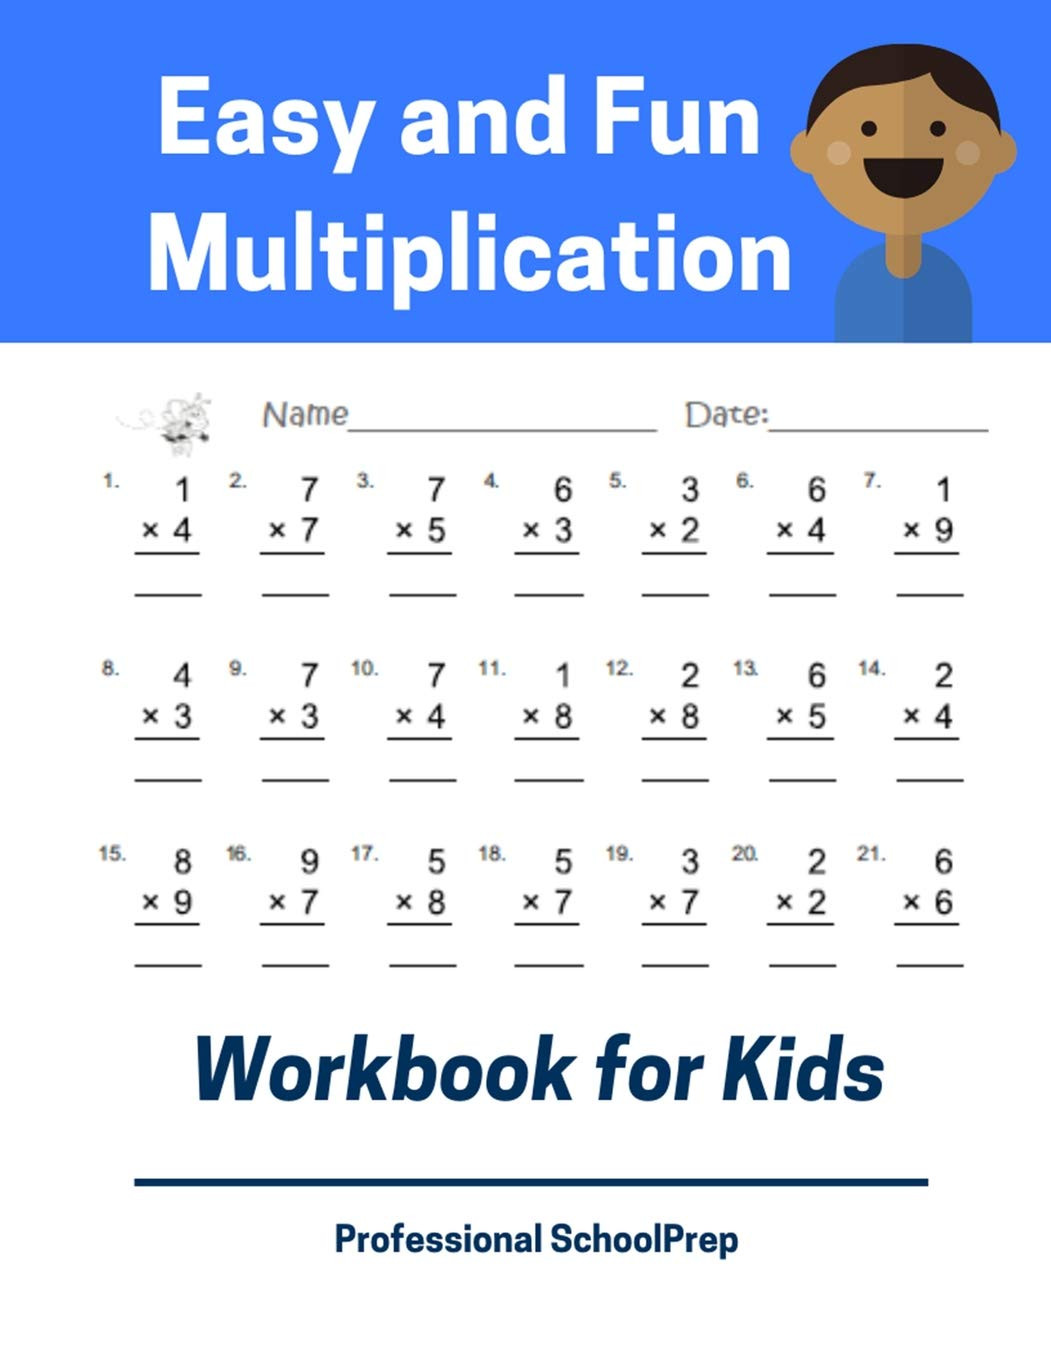 Everyday Math 4th Grade Worksheets Easy and Fun Multiplication Workbook for Kids Full Set 5000